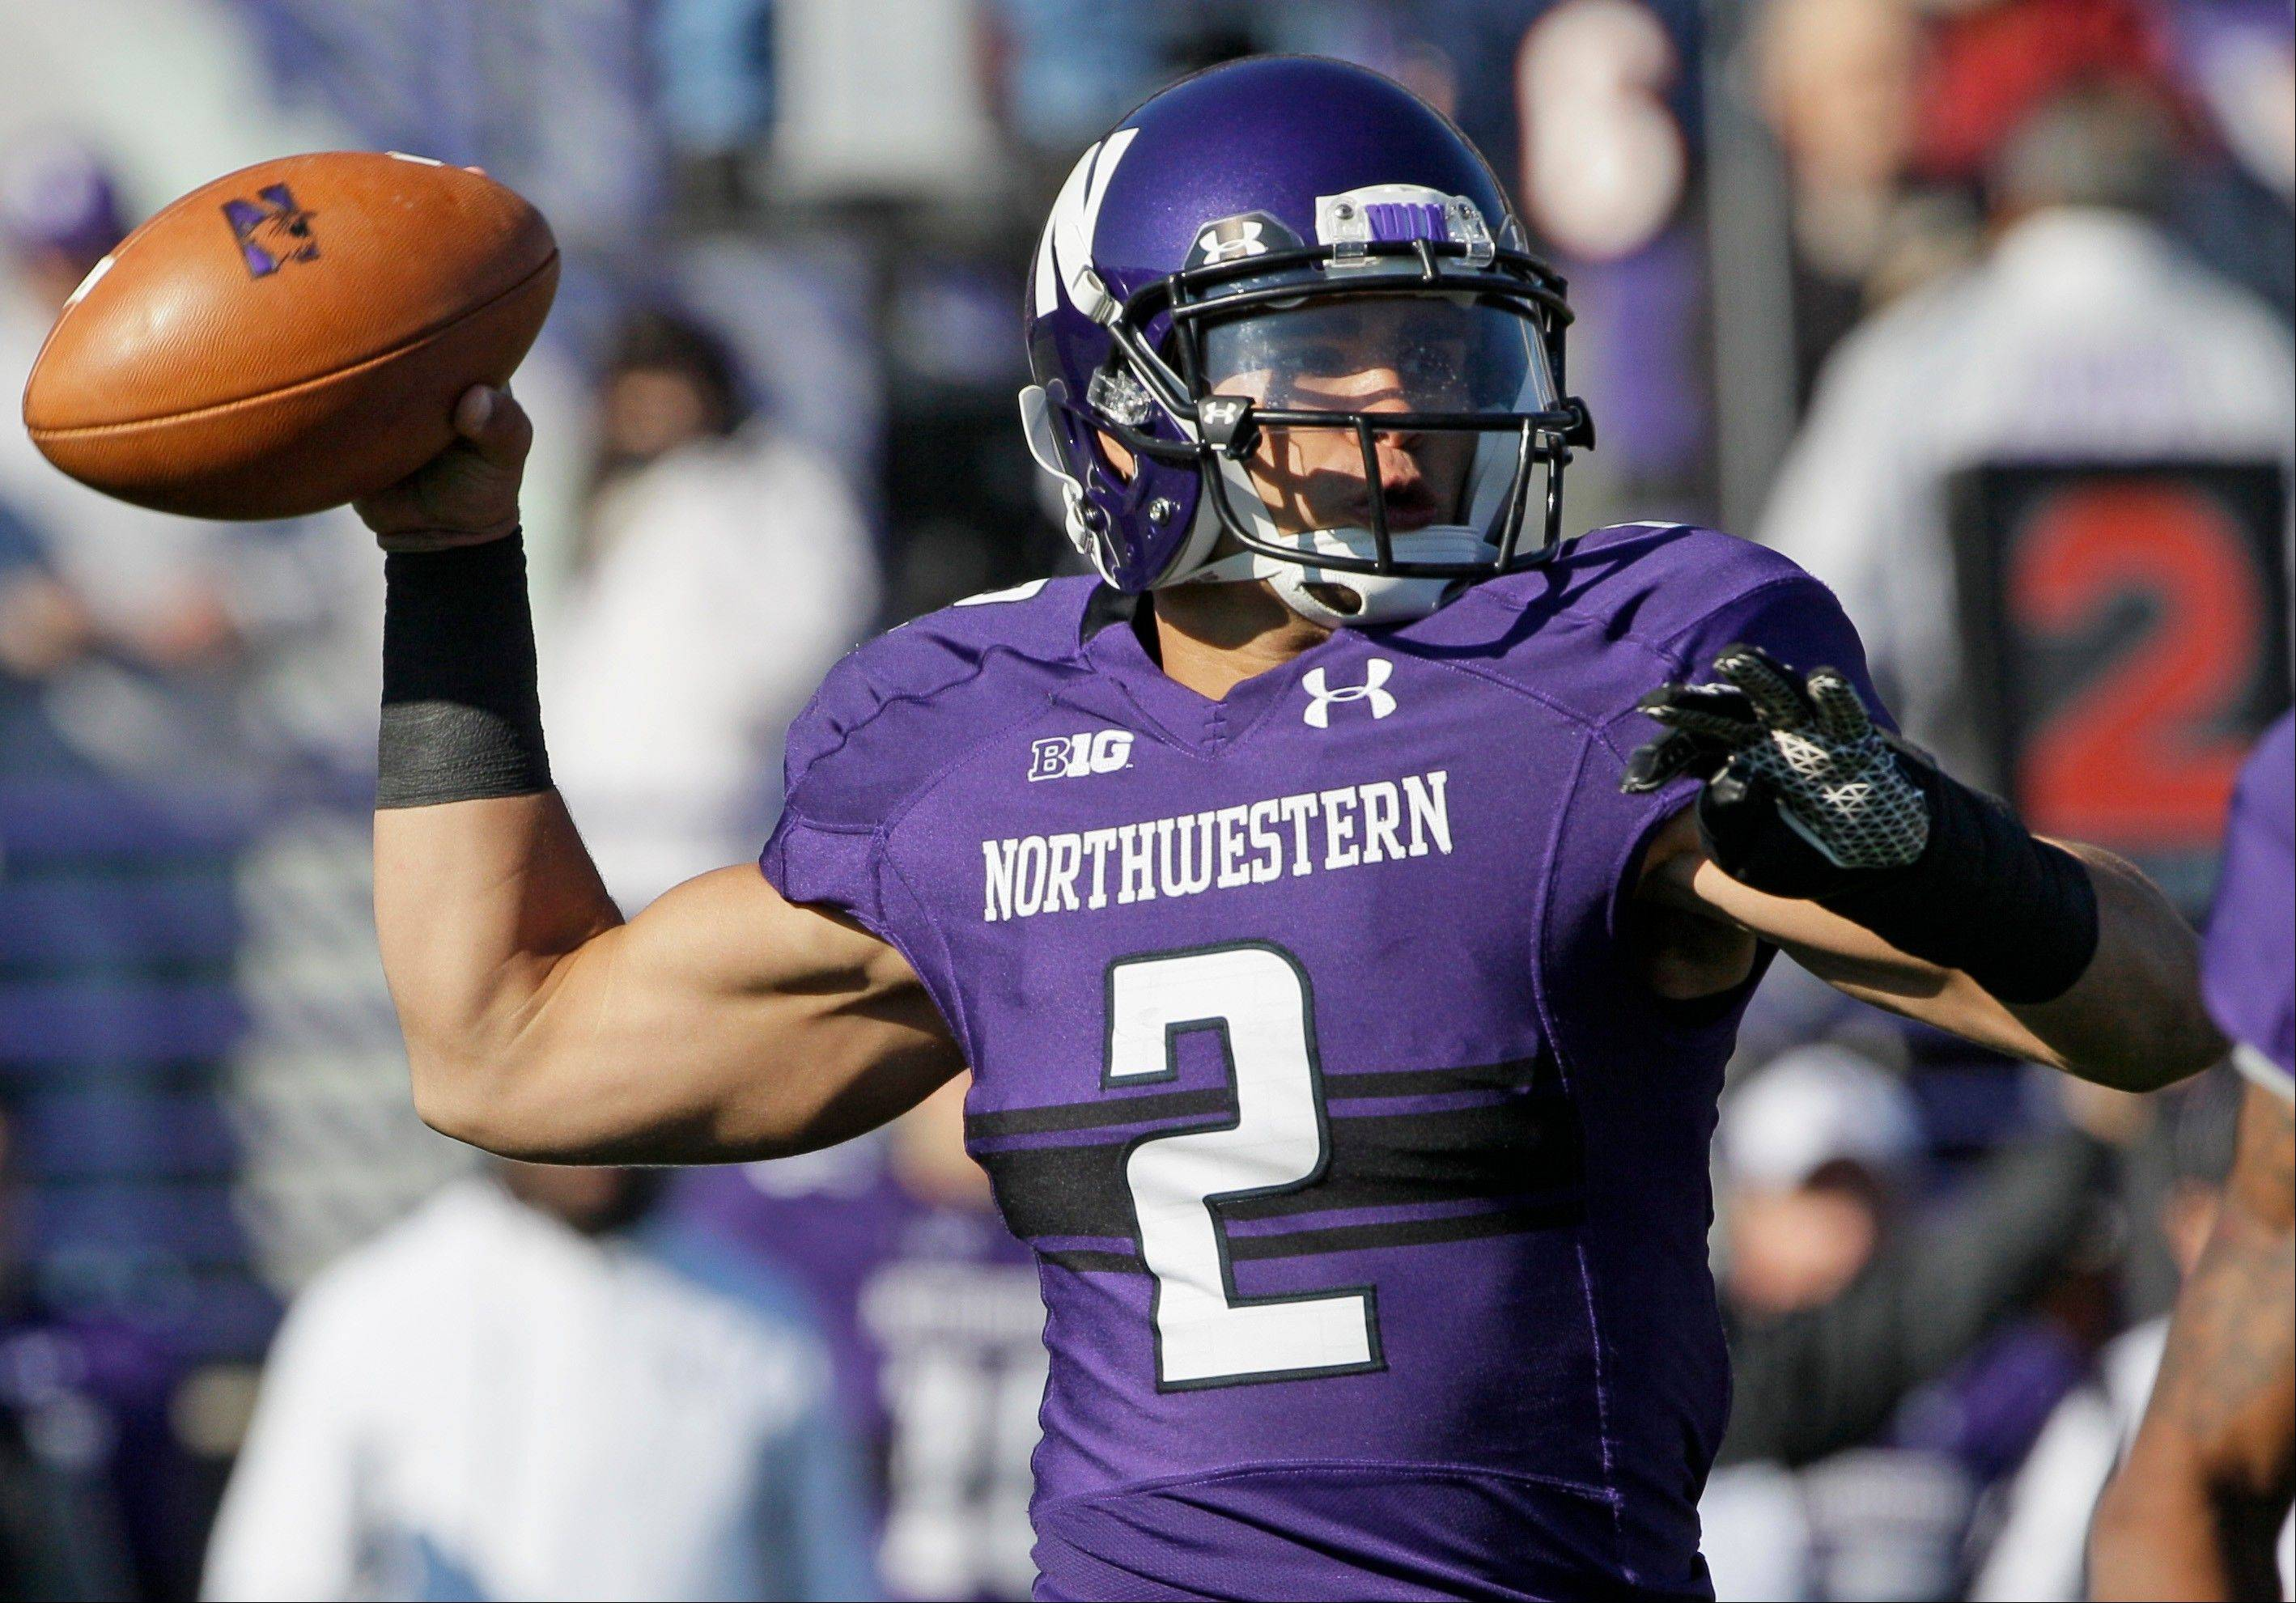 Northwestern football bowled over with optimism